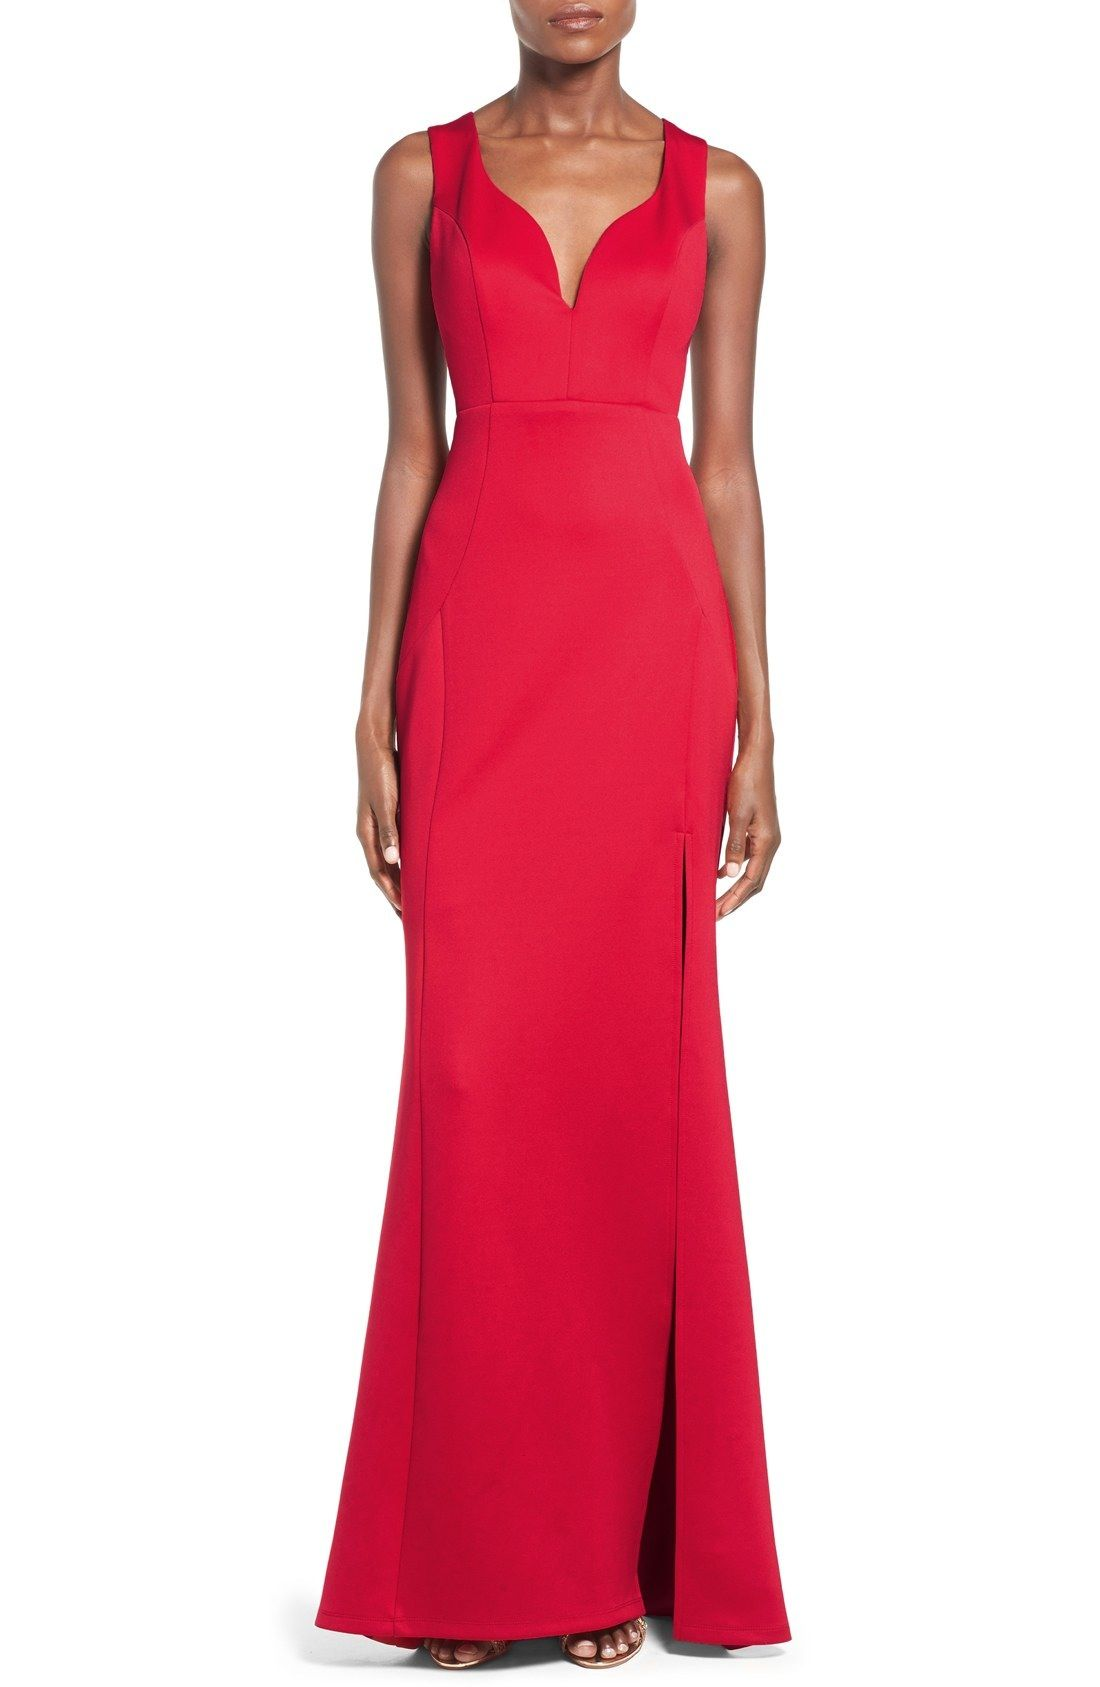 Love, Nickie Lew 'Venus' Side Cutout Gown available at #Nordstrom